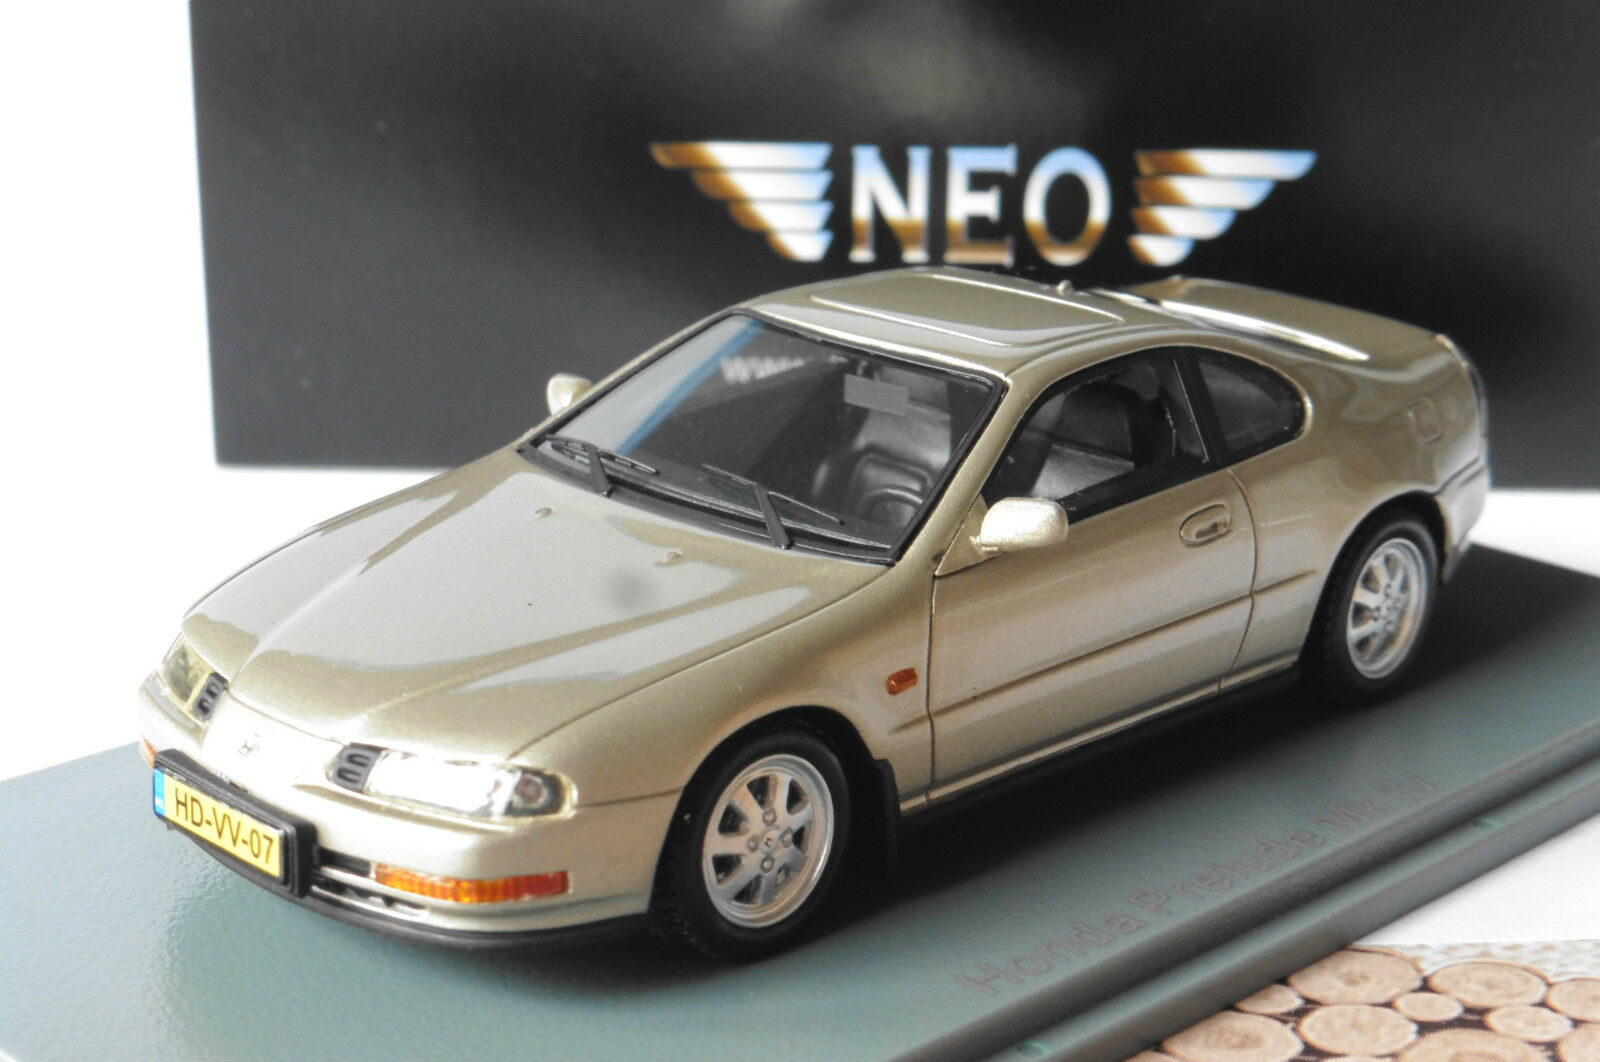 HONDA PRELUDE MKIV MKIV MKIV 1992 BEIGE METAL NEO 44507 1/43 METALLIC LHD LEFT HAND DRIVE | La Mode